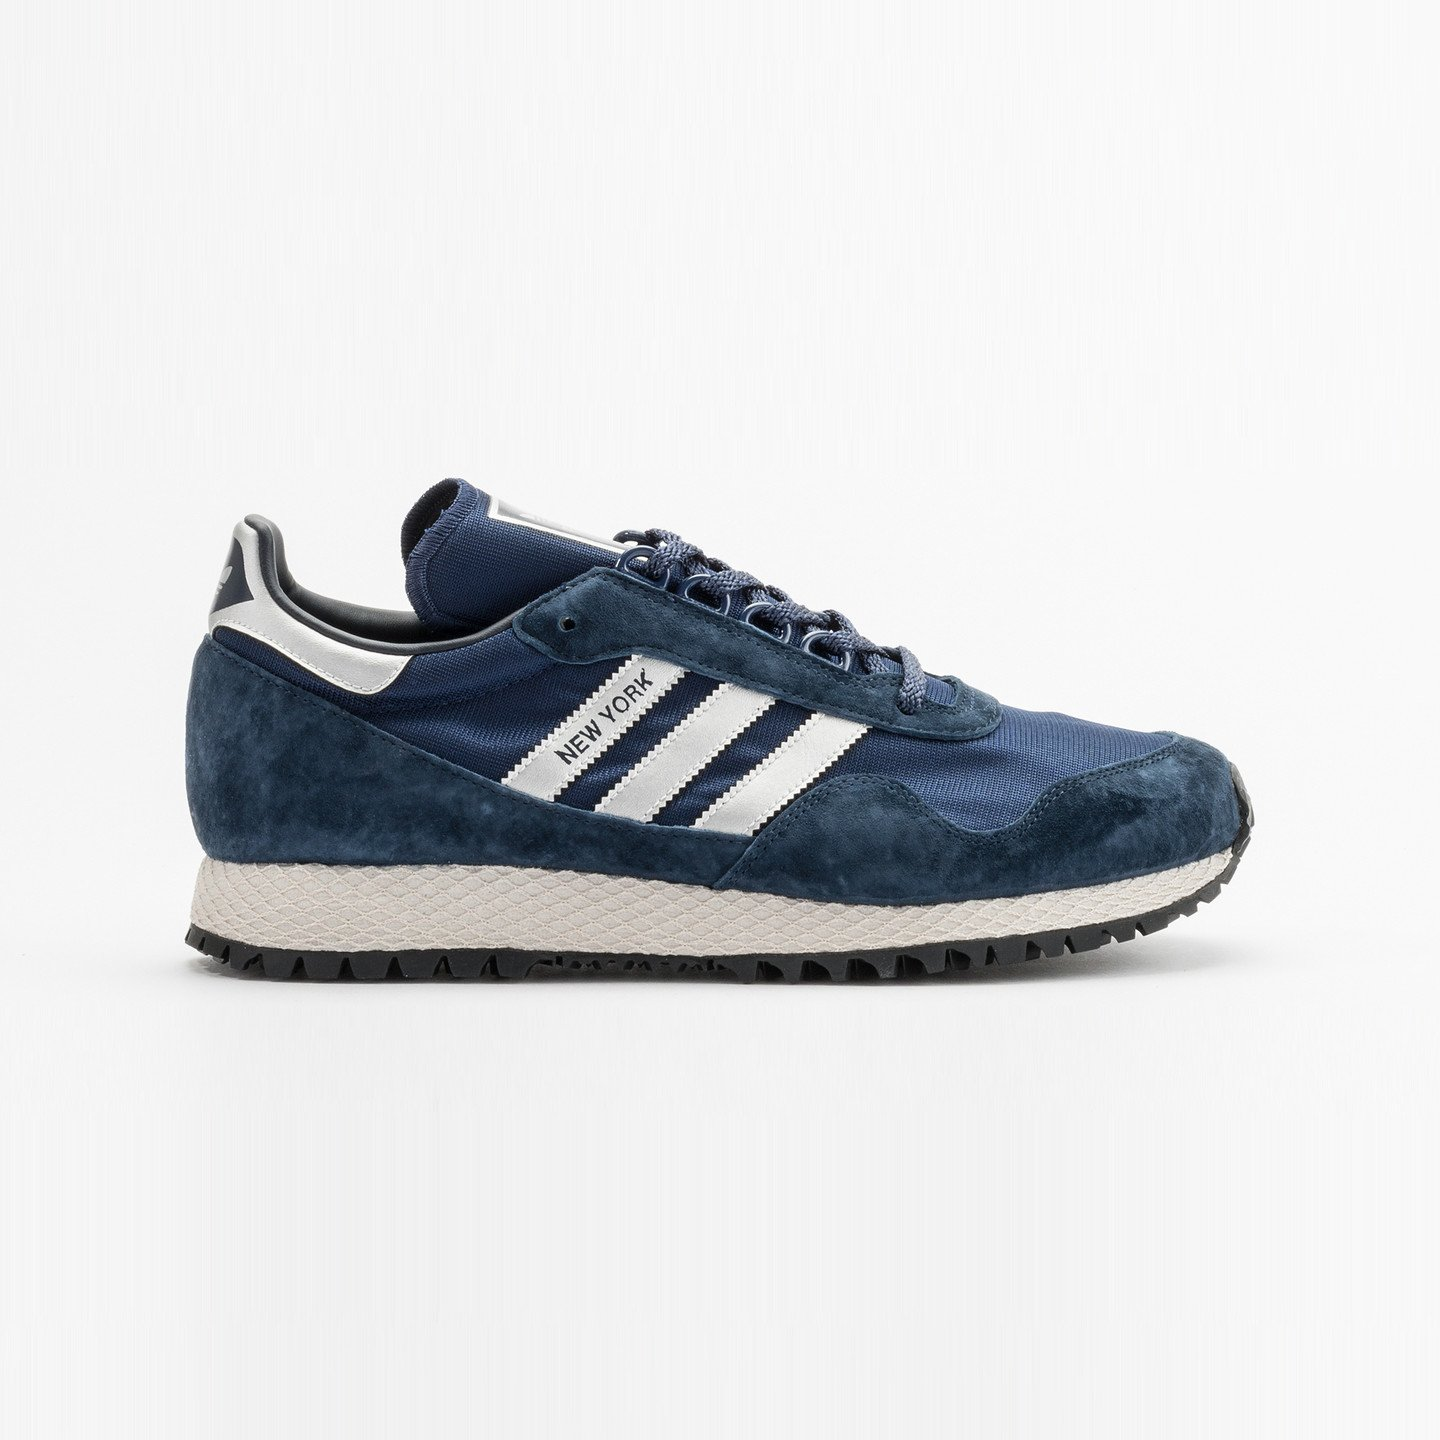 Adidas New York Collegiate Navy / Metallic Silver BB1188-45.33